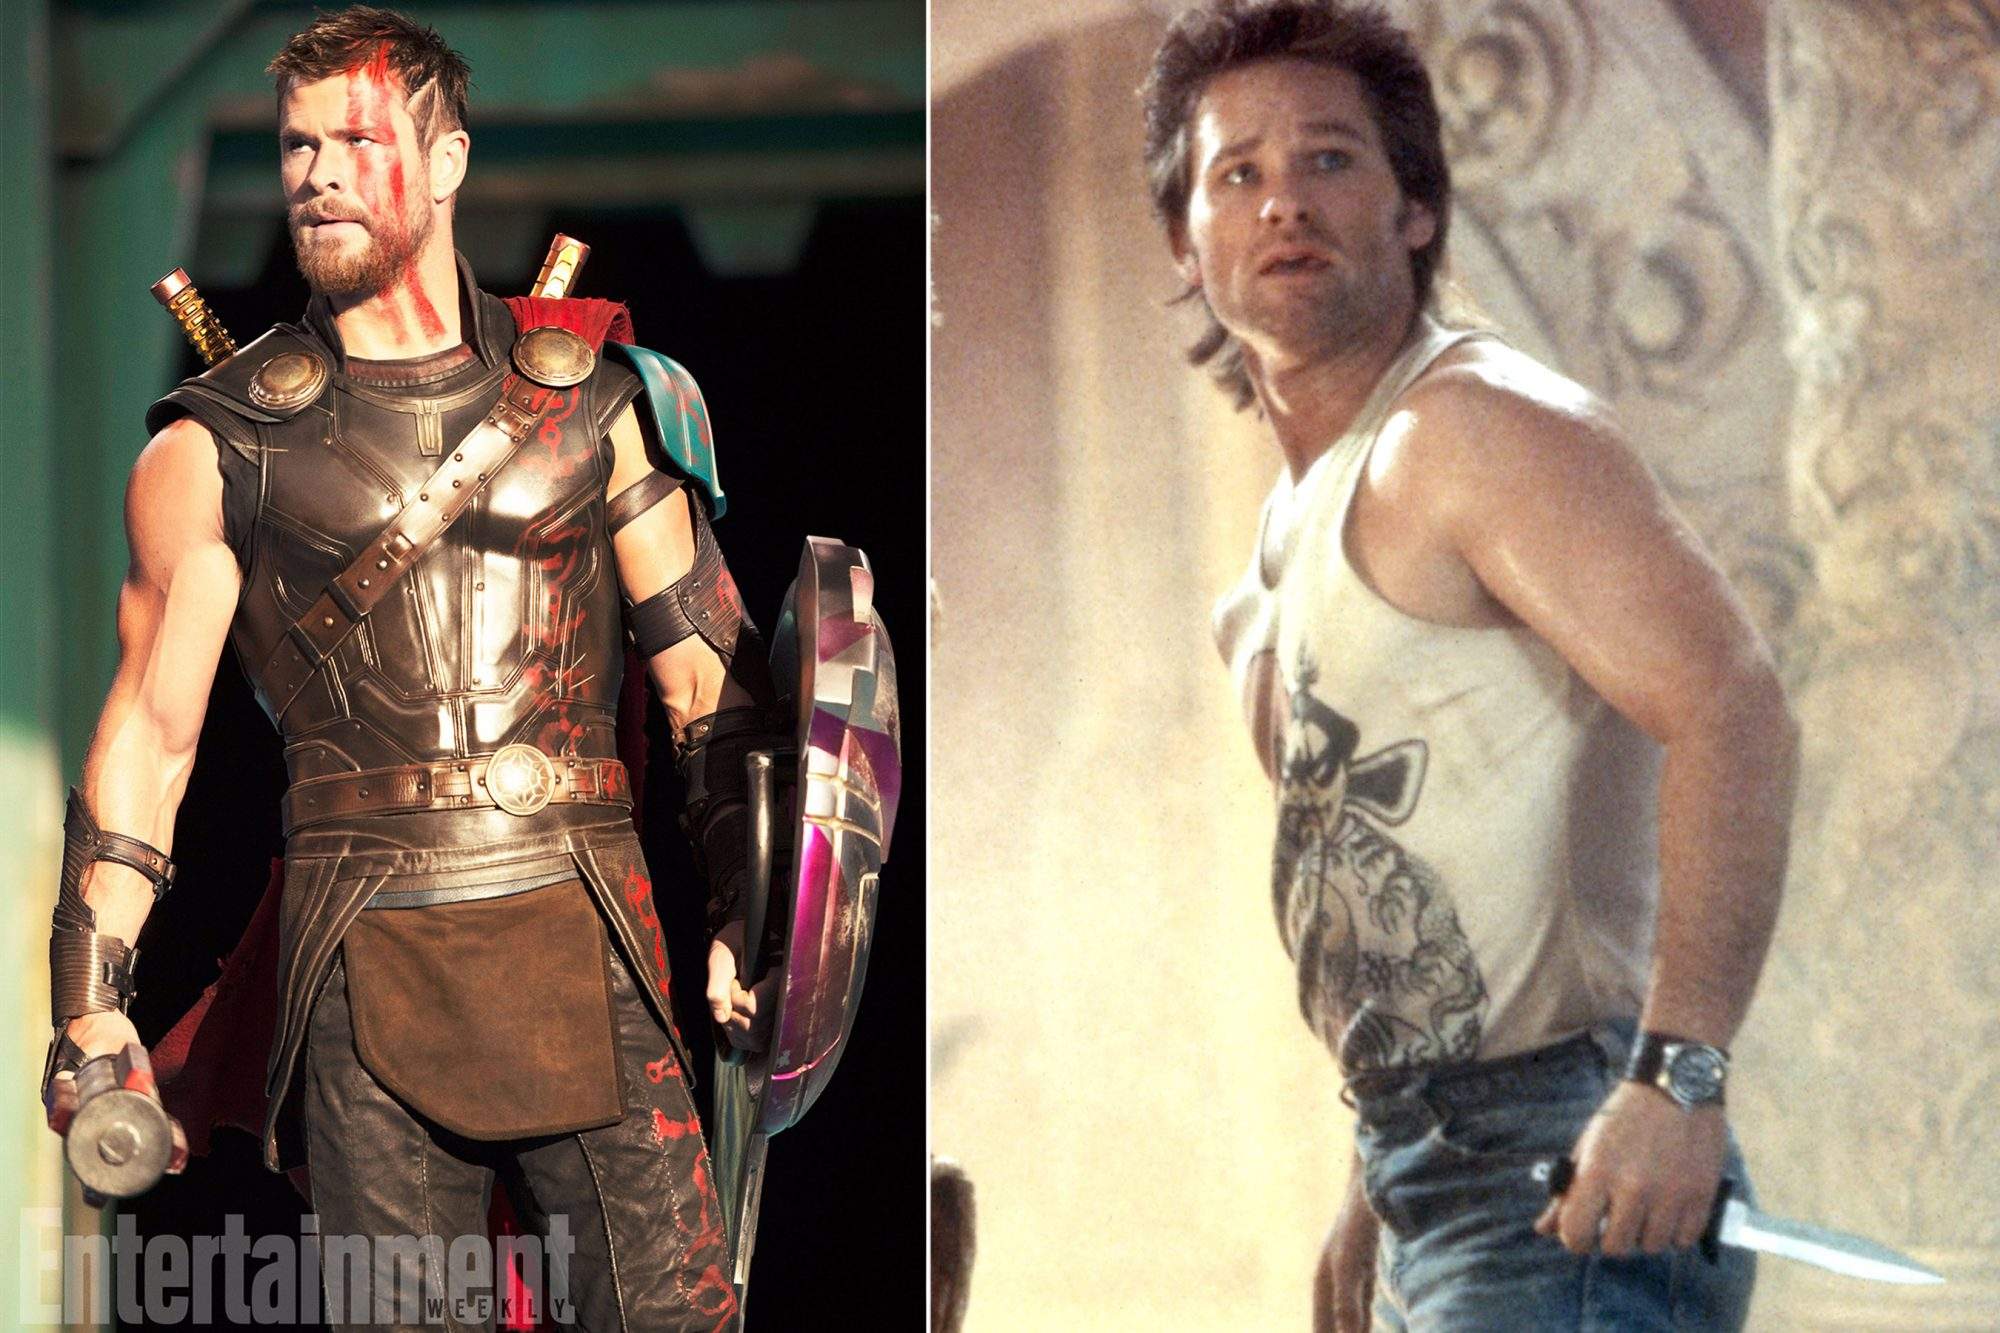 Thor and Big Trouble in Little China